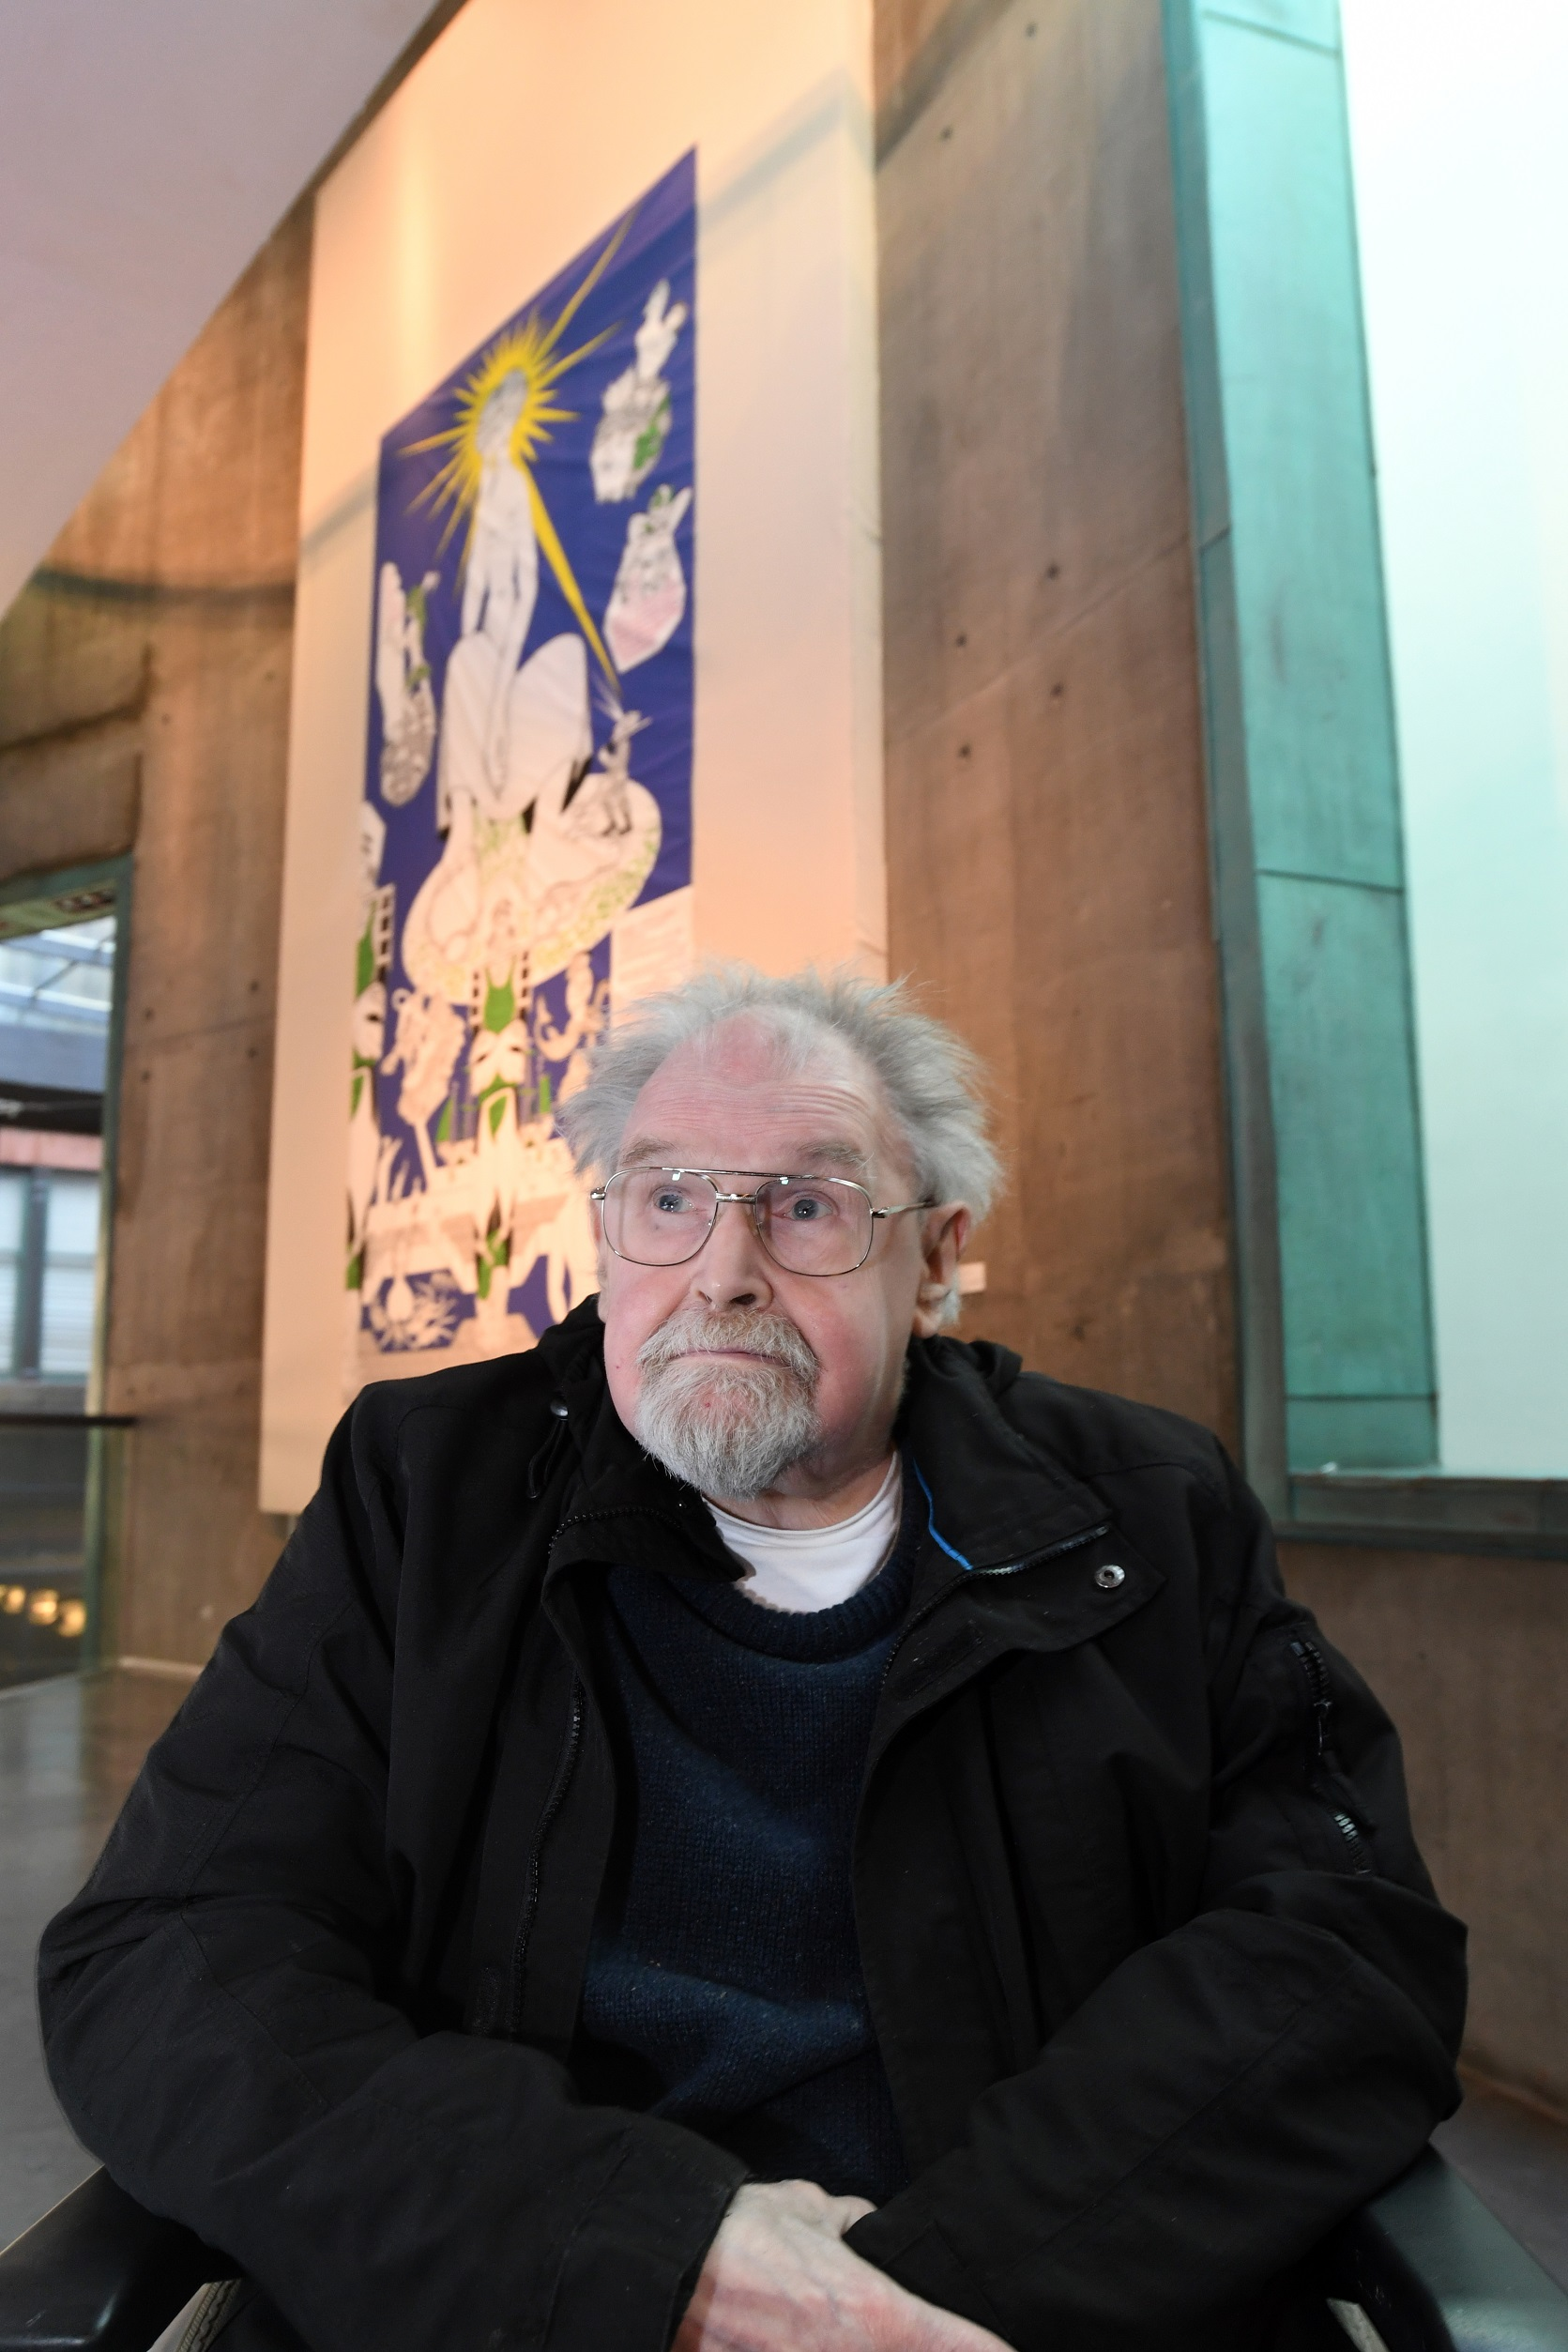 Alasdair Gray at the unveiling of the Facsimilization exhibition at The Lighthouse in Glasgow (Glasgow City Council/PA)